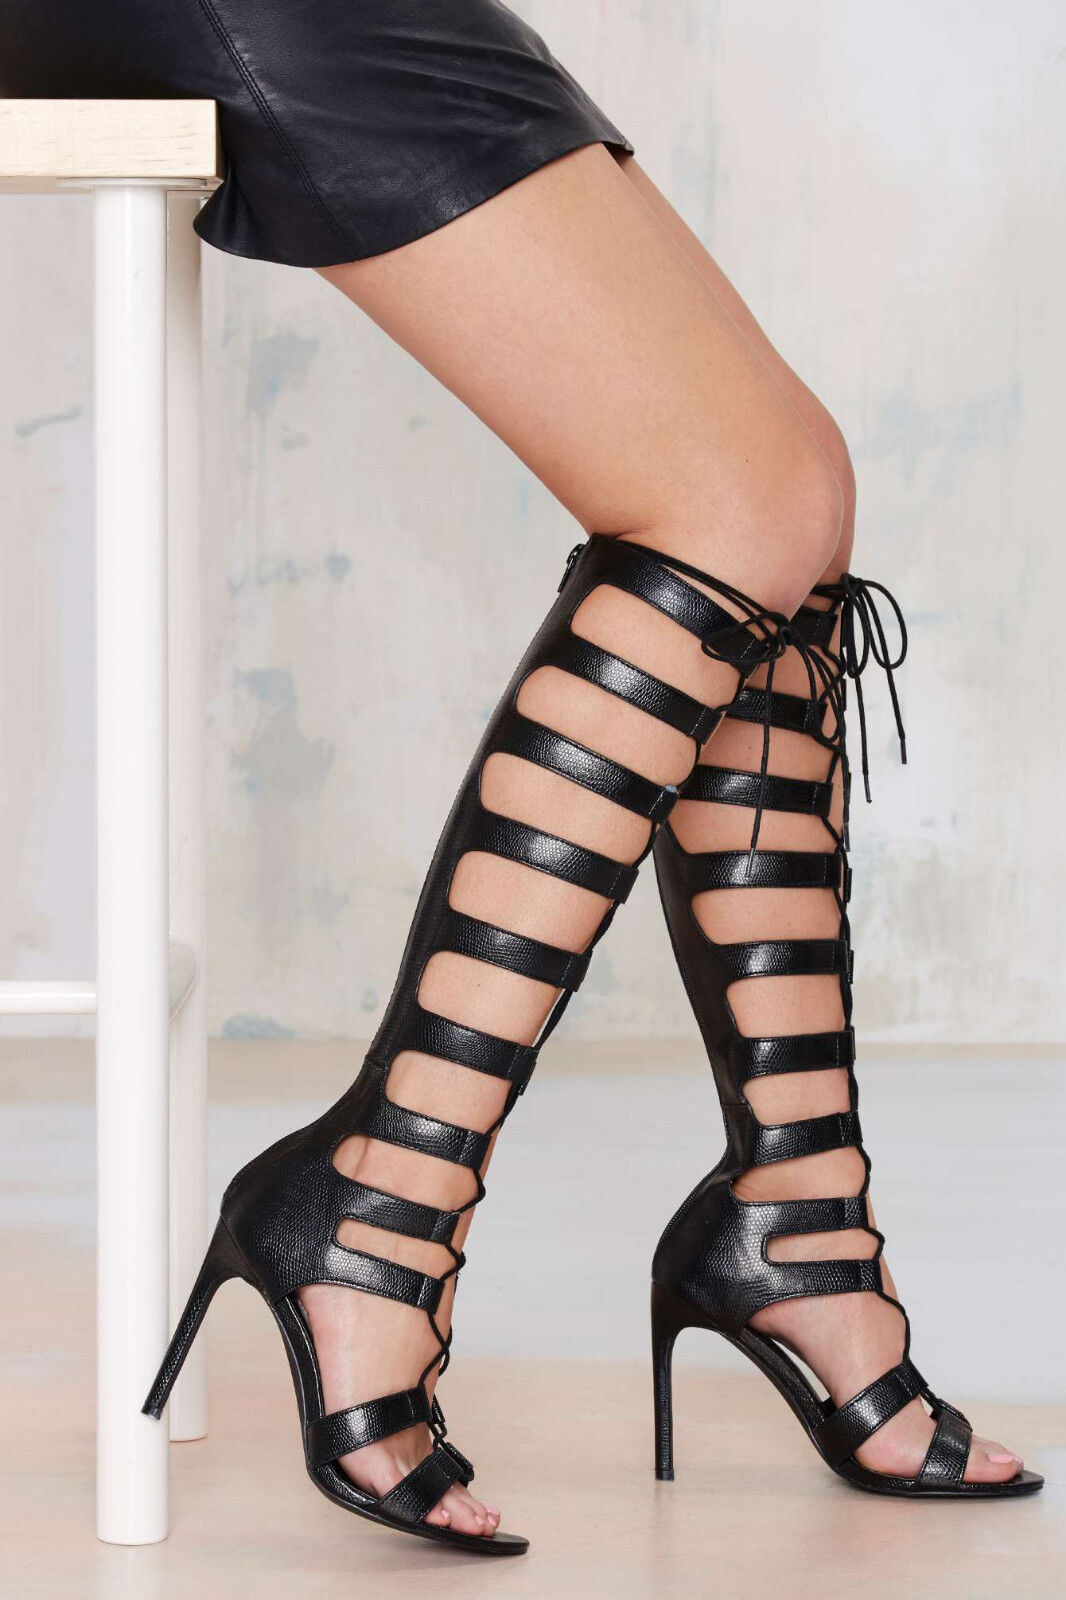 Nouveau Nasty Gal Noir Fighter Gladiator Talons Chaussures Taille 10